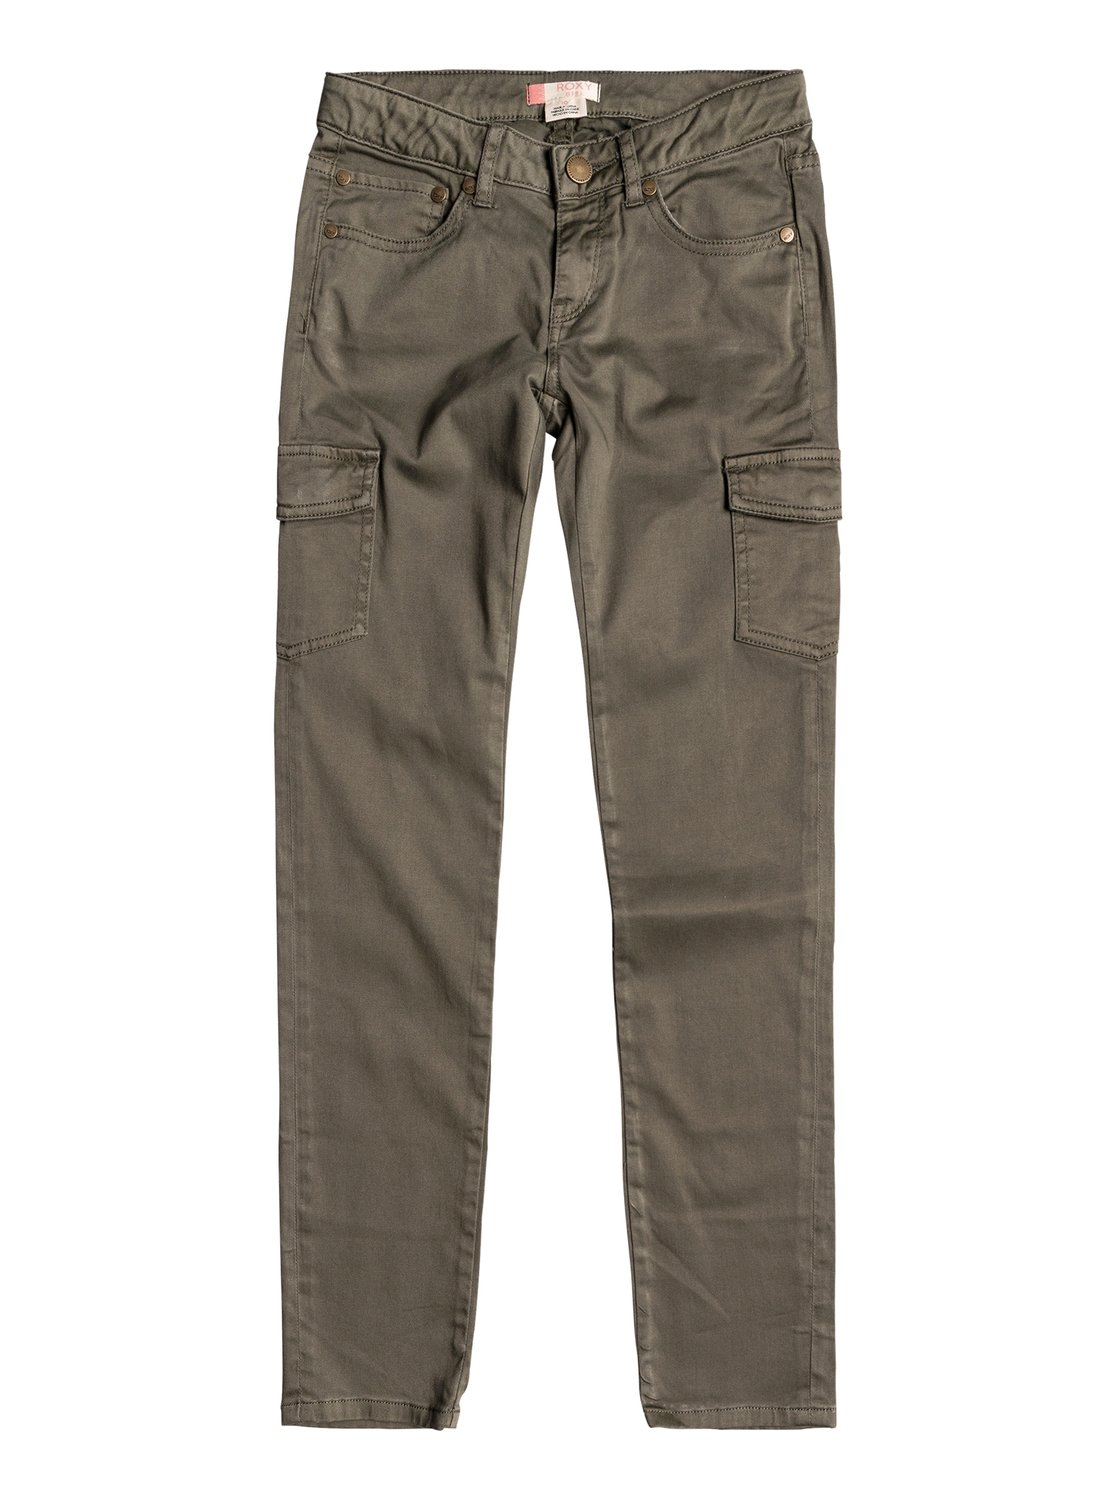 Time To Know - Pantalones Tipo Militar para Chicas Roxy